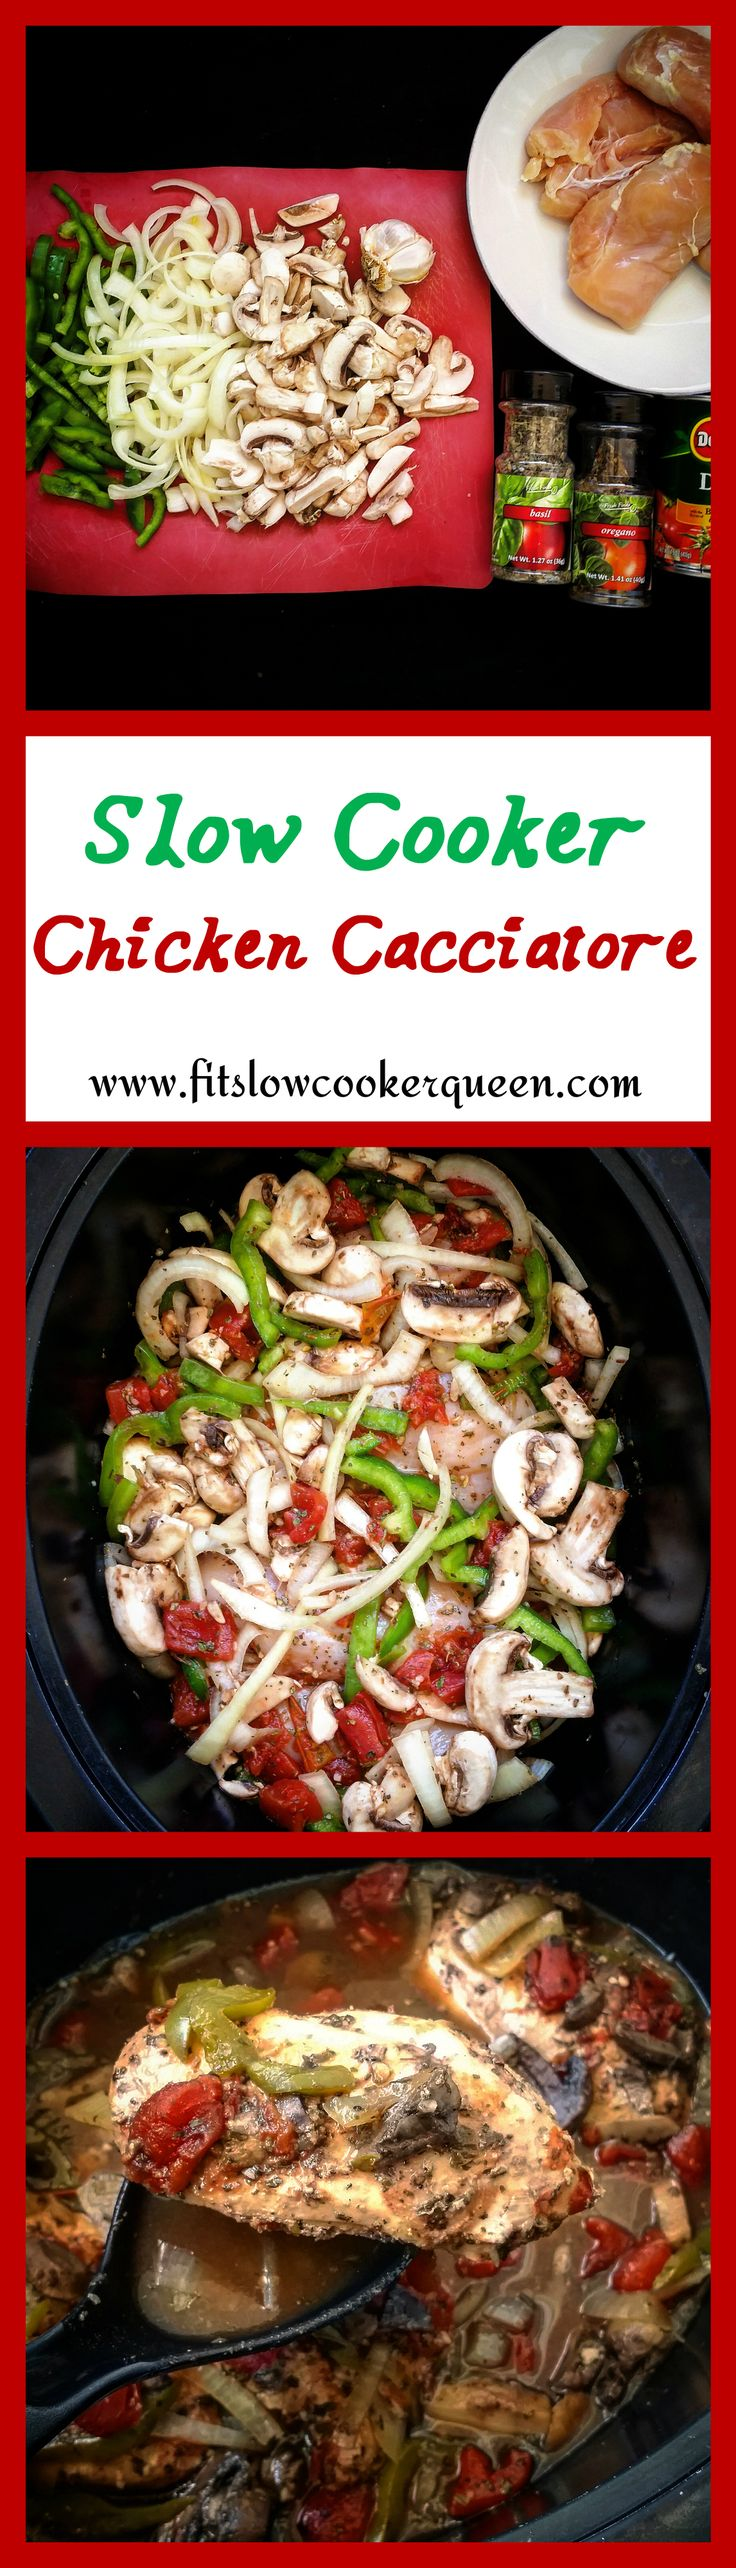 This slow cooker chicken cacciatore recipe is a healthy version of an Italian classic. #slowcooker #crockpot